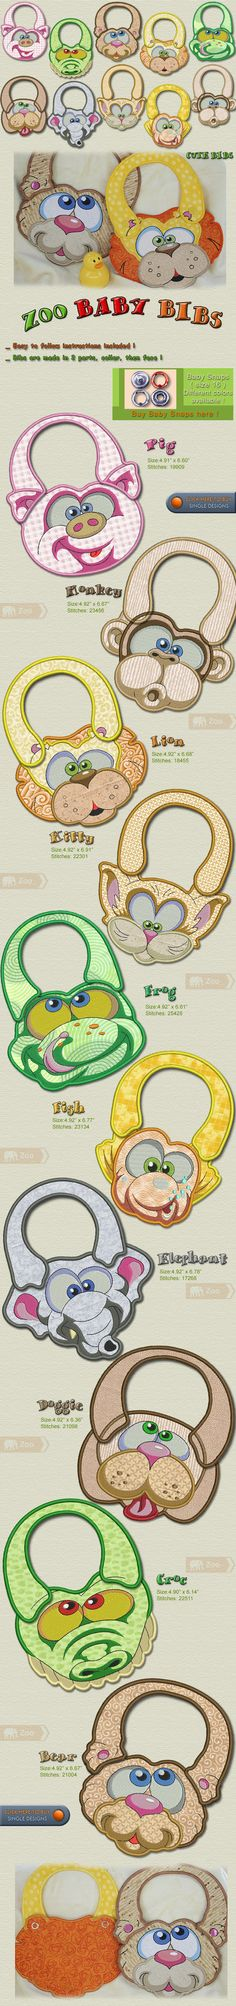 Zoo Baby Bibs Embroidery Designs Free Embroidery Design Patterns Applique                                                                                                                                                                                 More